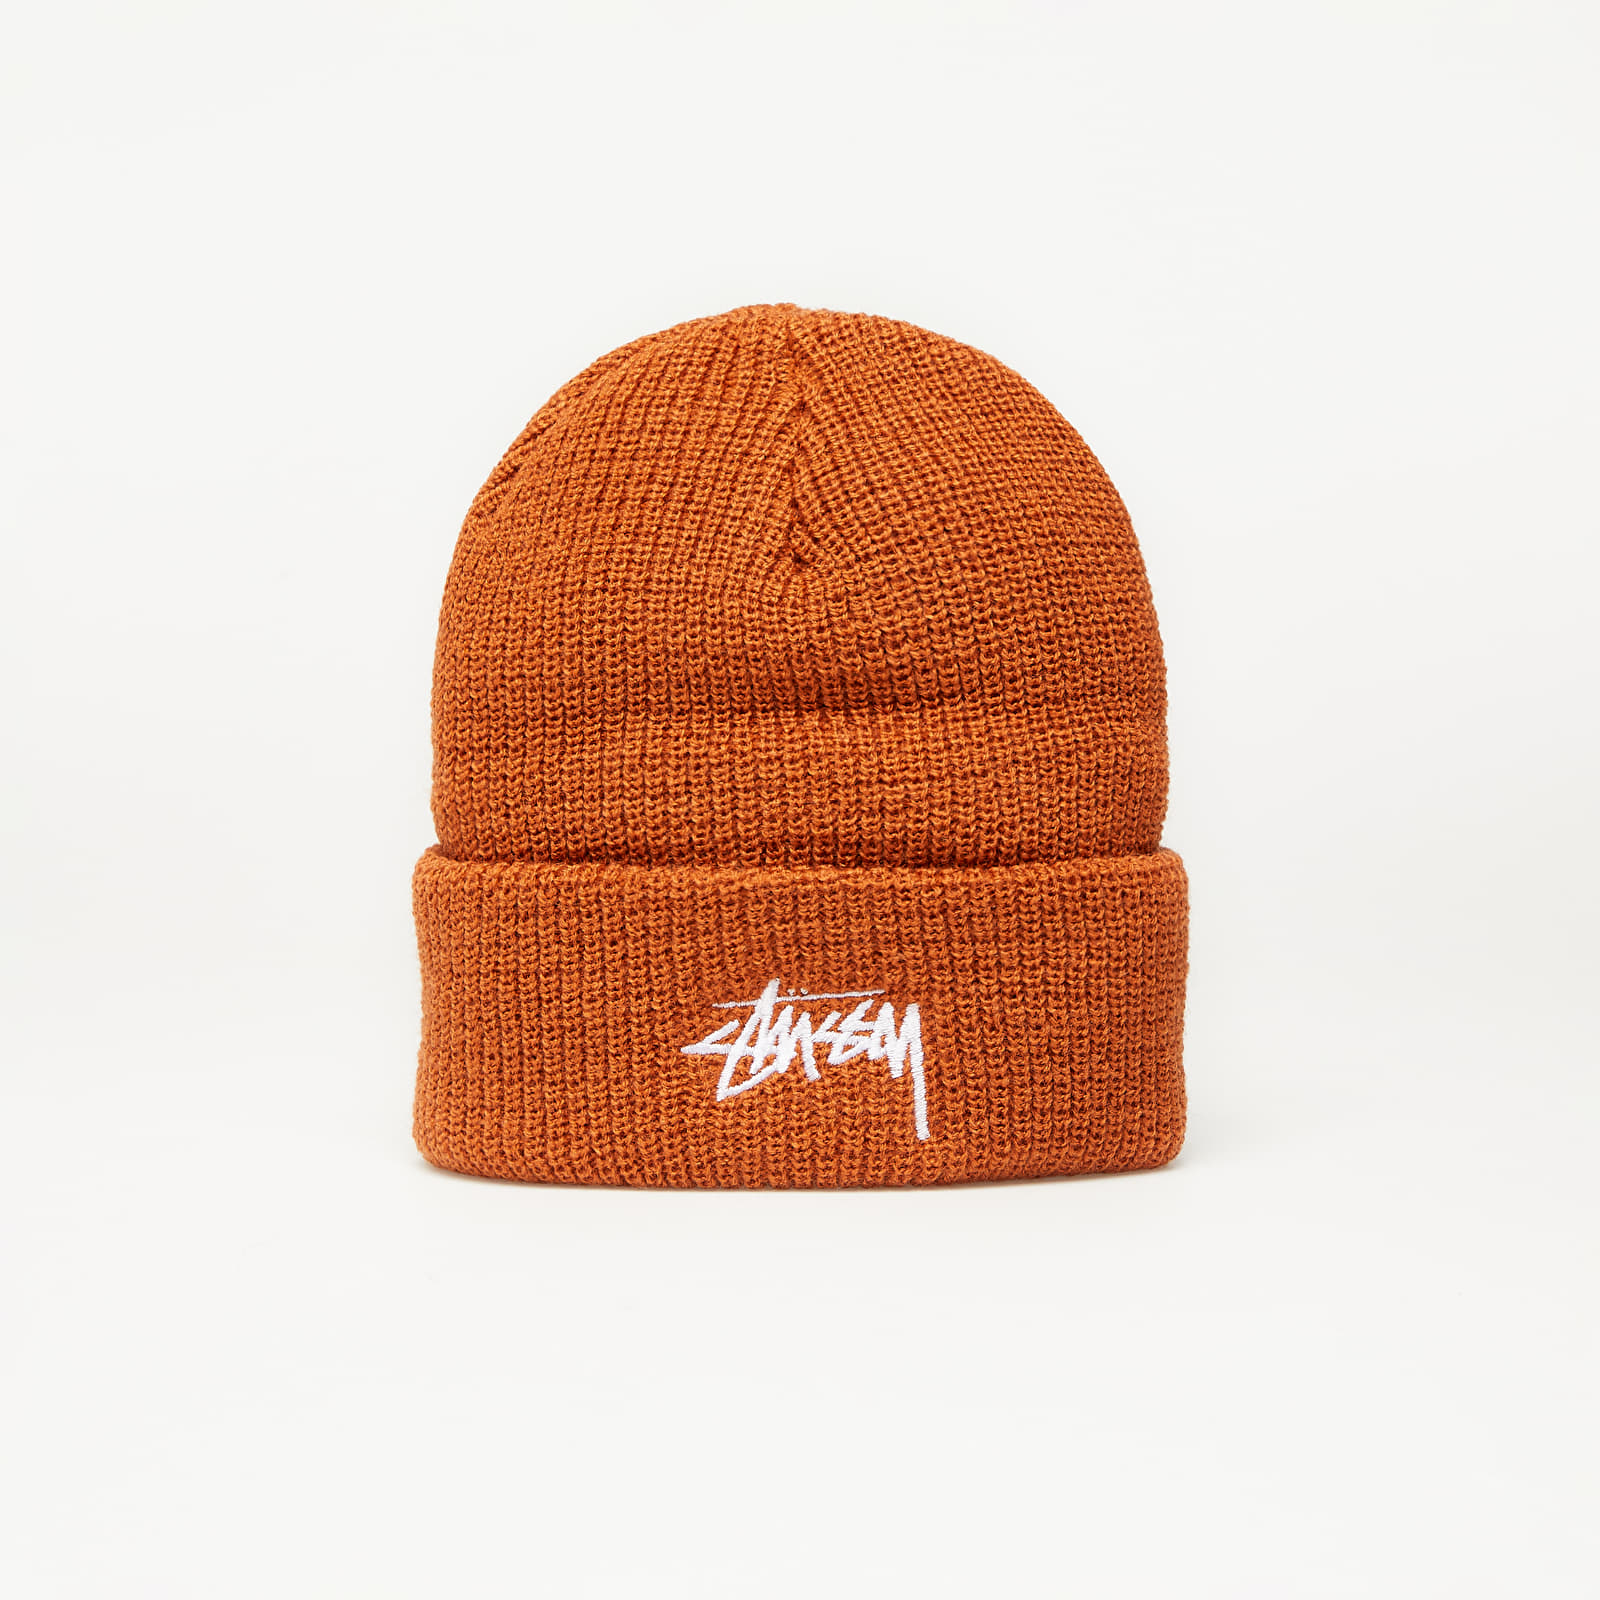 Hats Stüssy Stock Cuff Beanie Burnt Orange